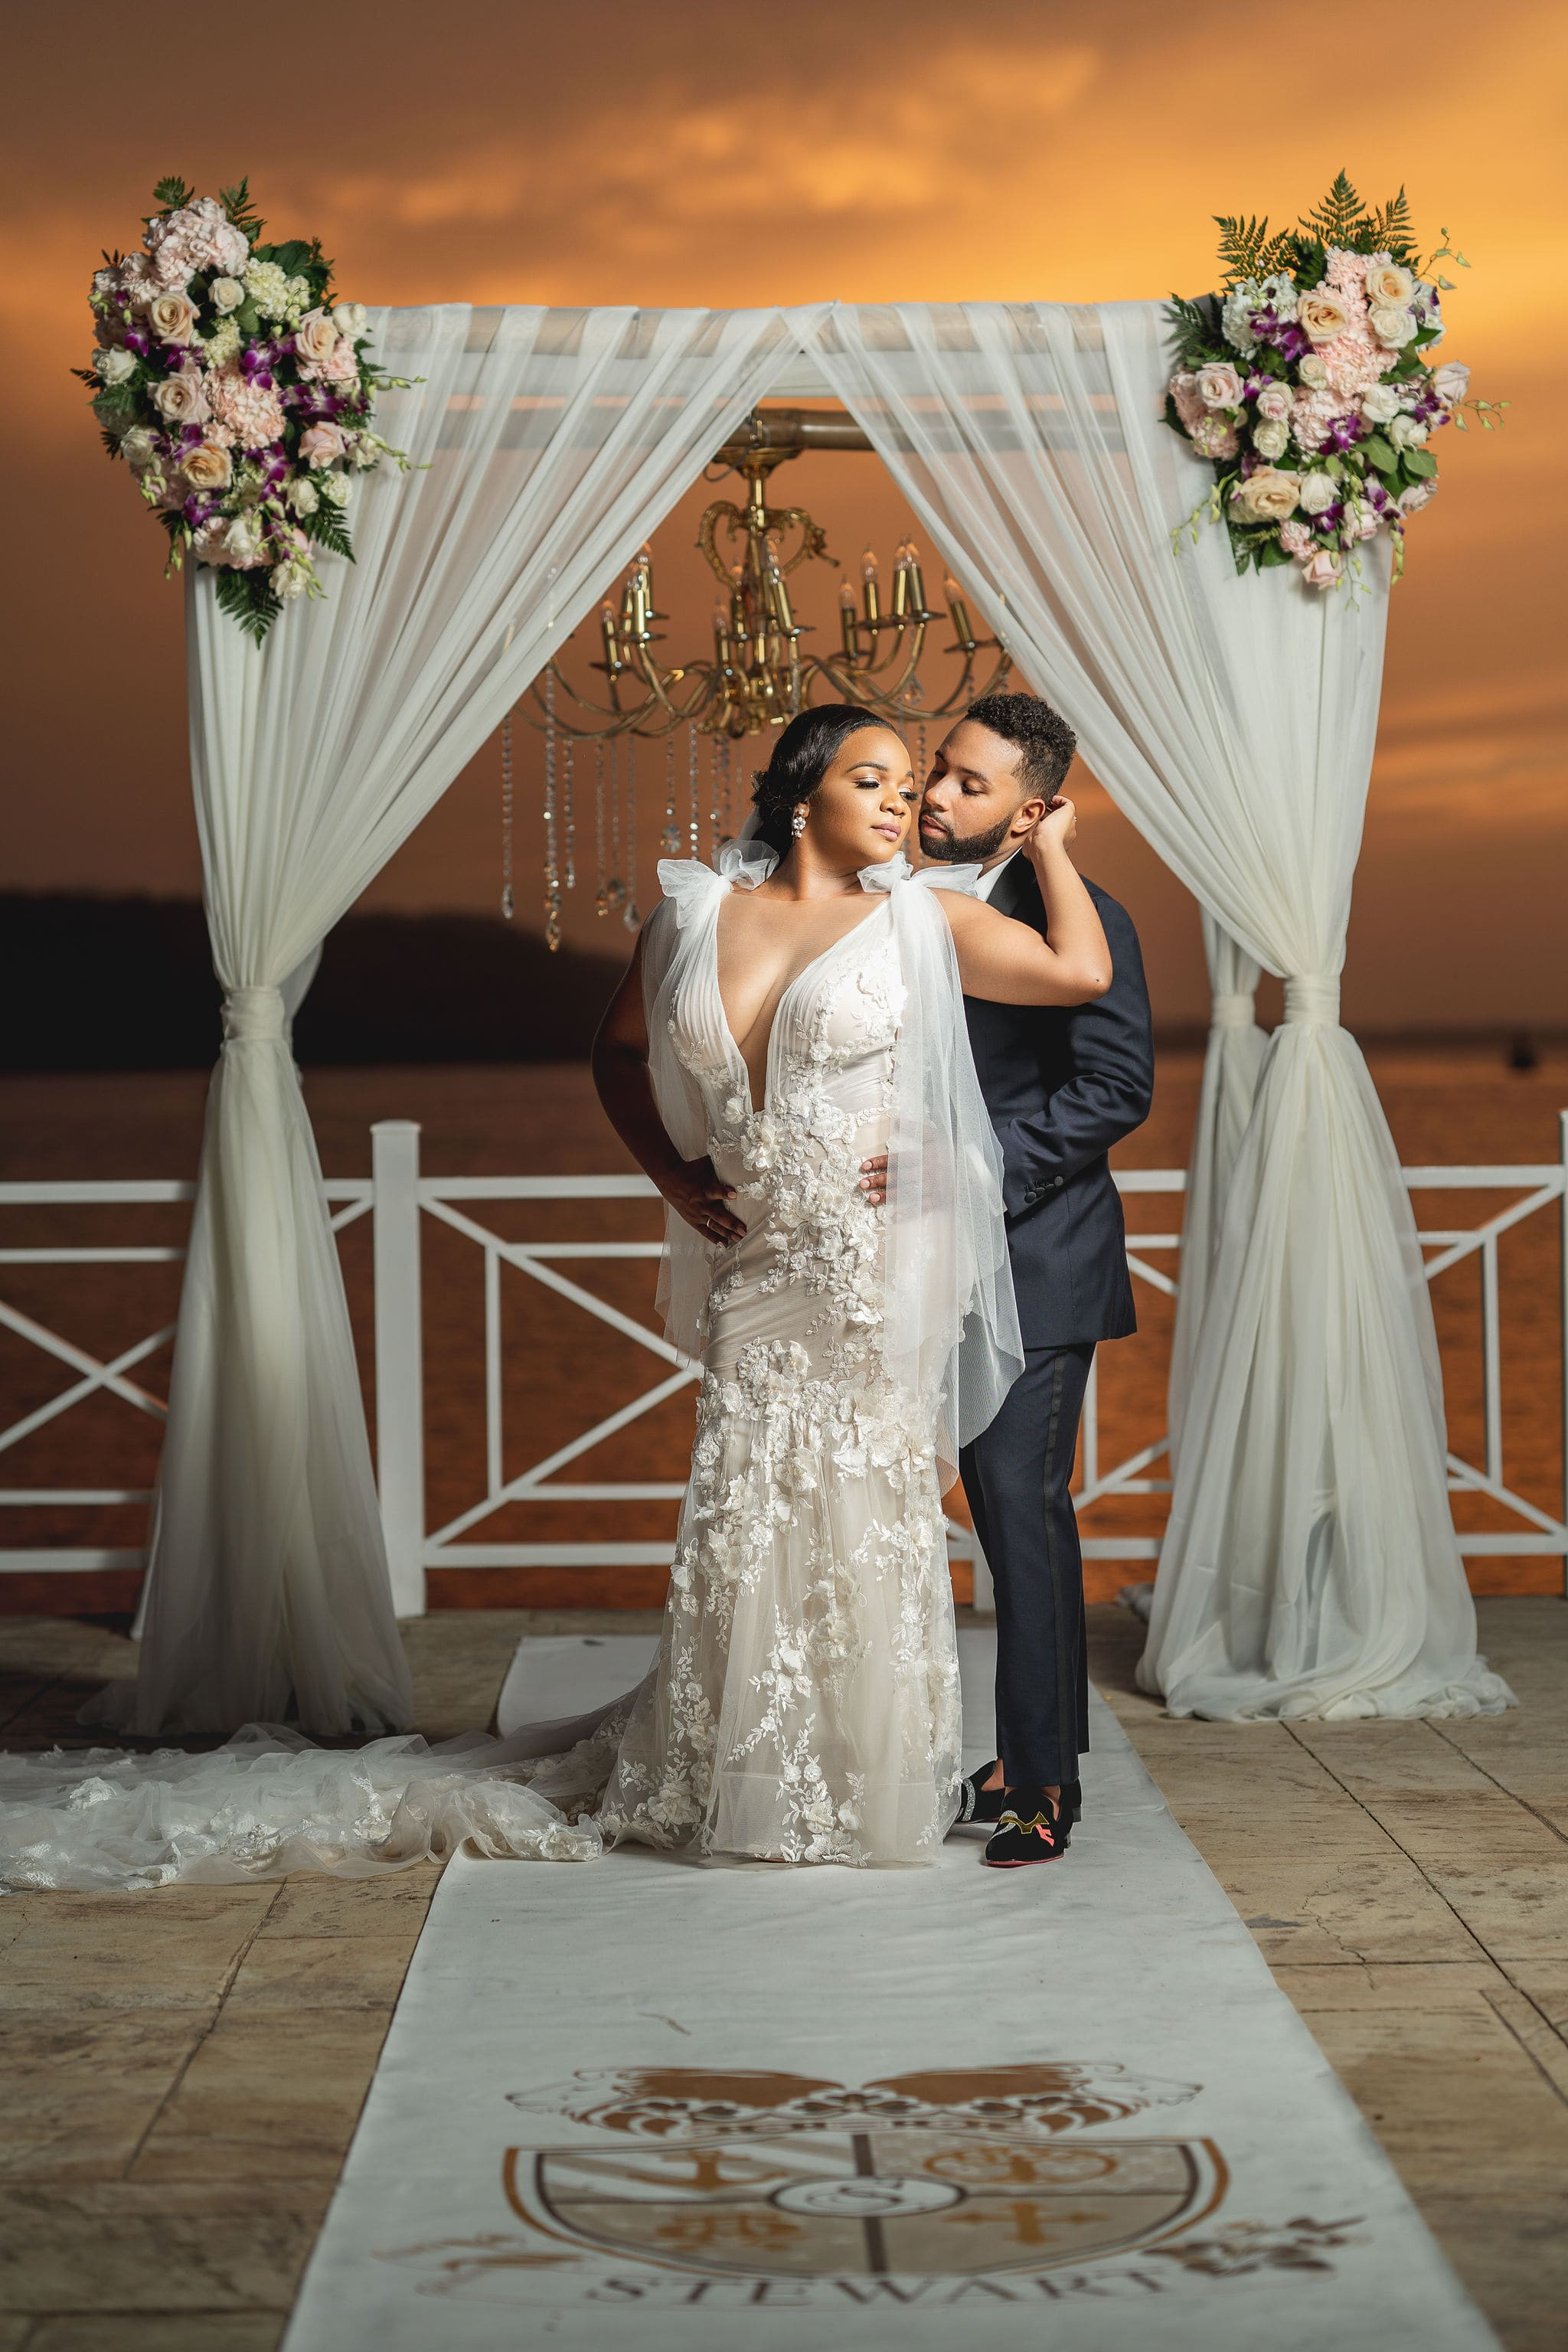 A Galia Lahav Dress For An Elegant Wedding At Moon Palace Jamaica Grande, Ocho Rios, Photography by CHINPHOTOGRAPHICS for Destination Wedding network Adriana Weddings